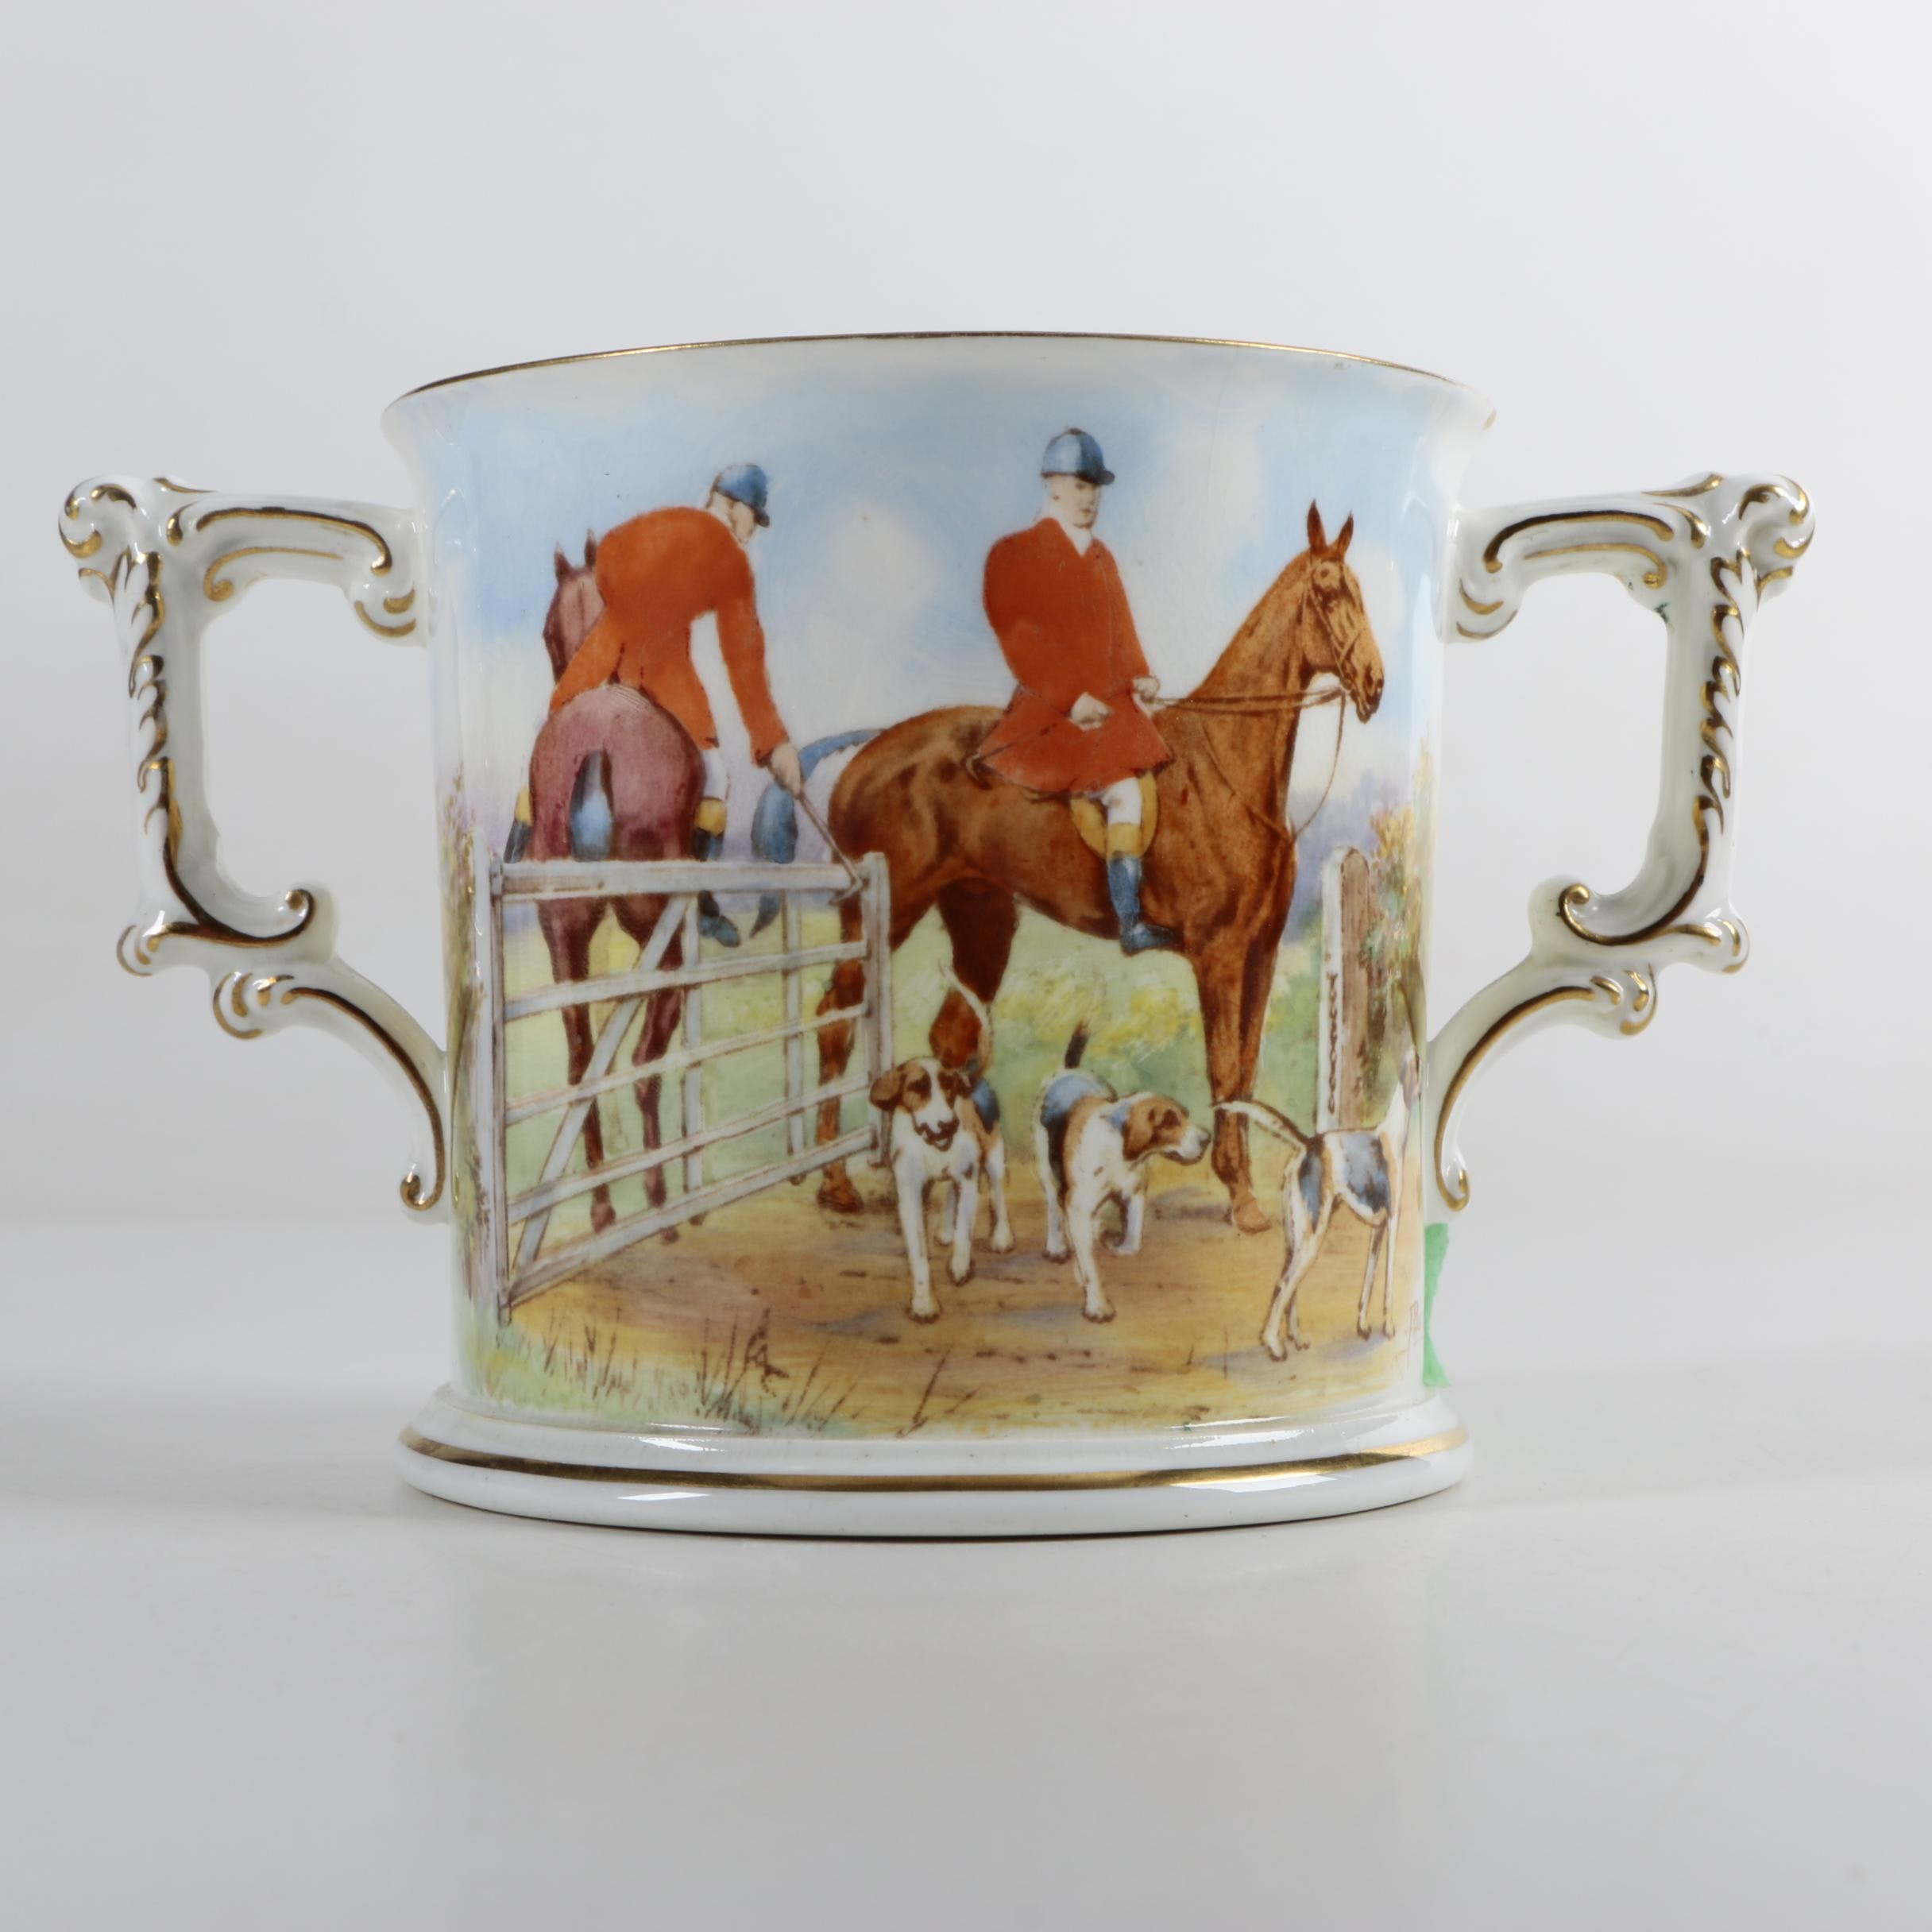 Royal Crown Derby Porcelain Loving Cup